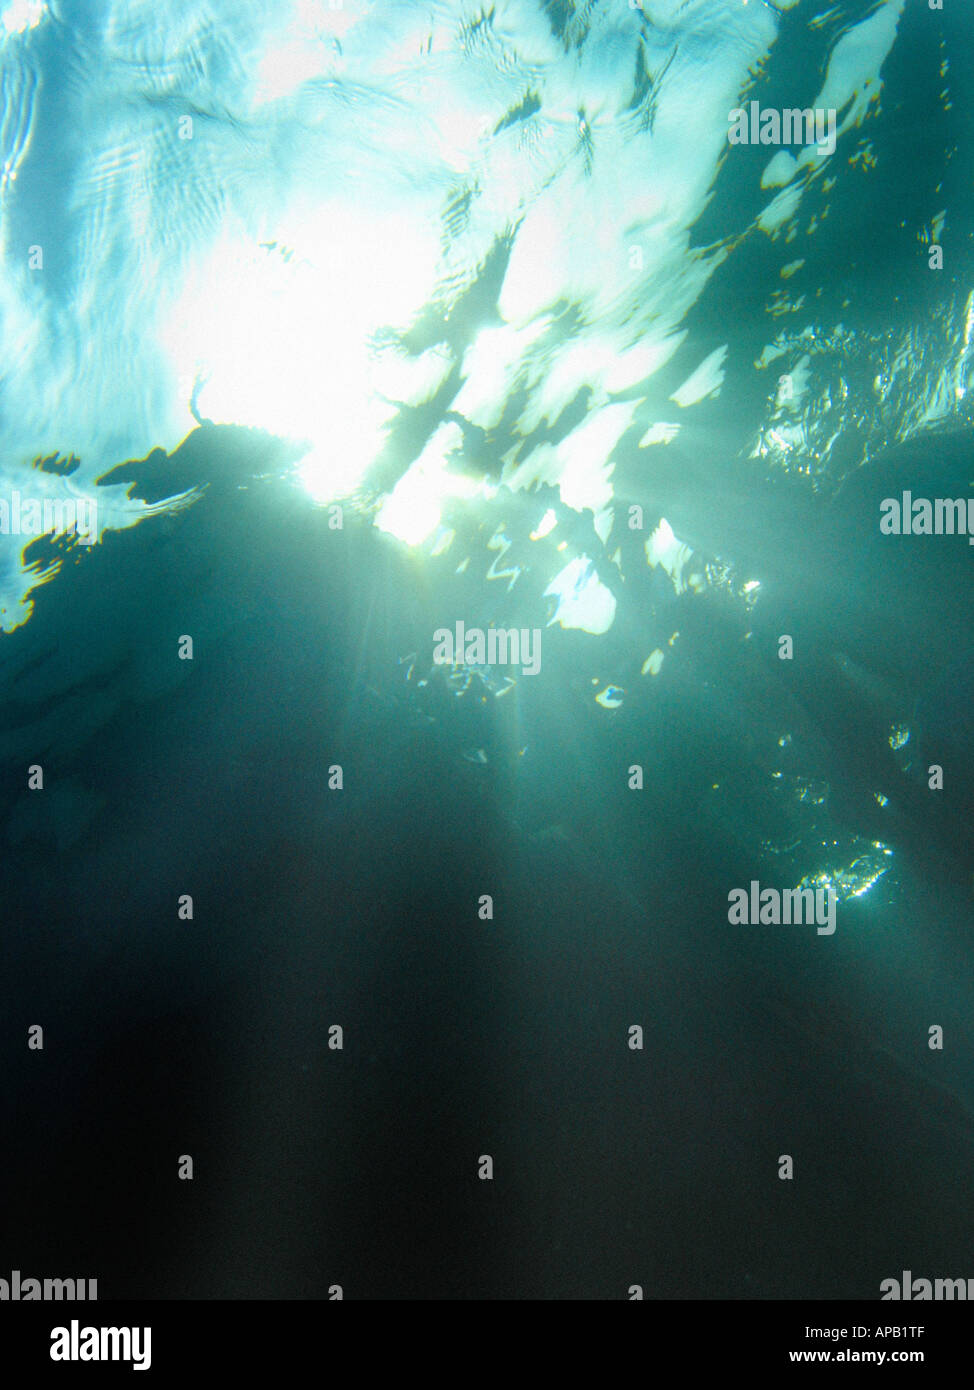 Surface of the sea taken from the seabed - Stock Image